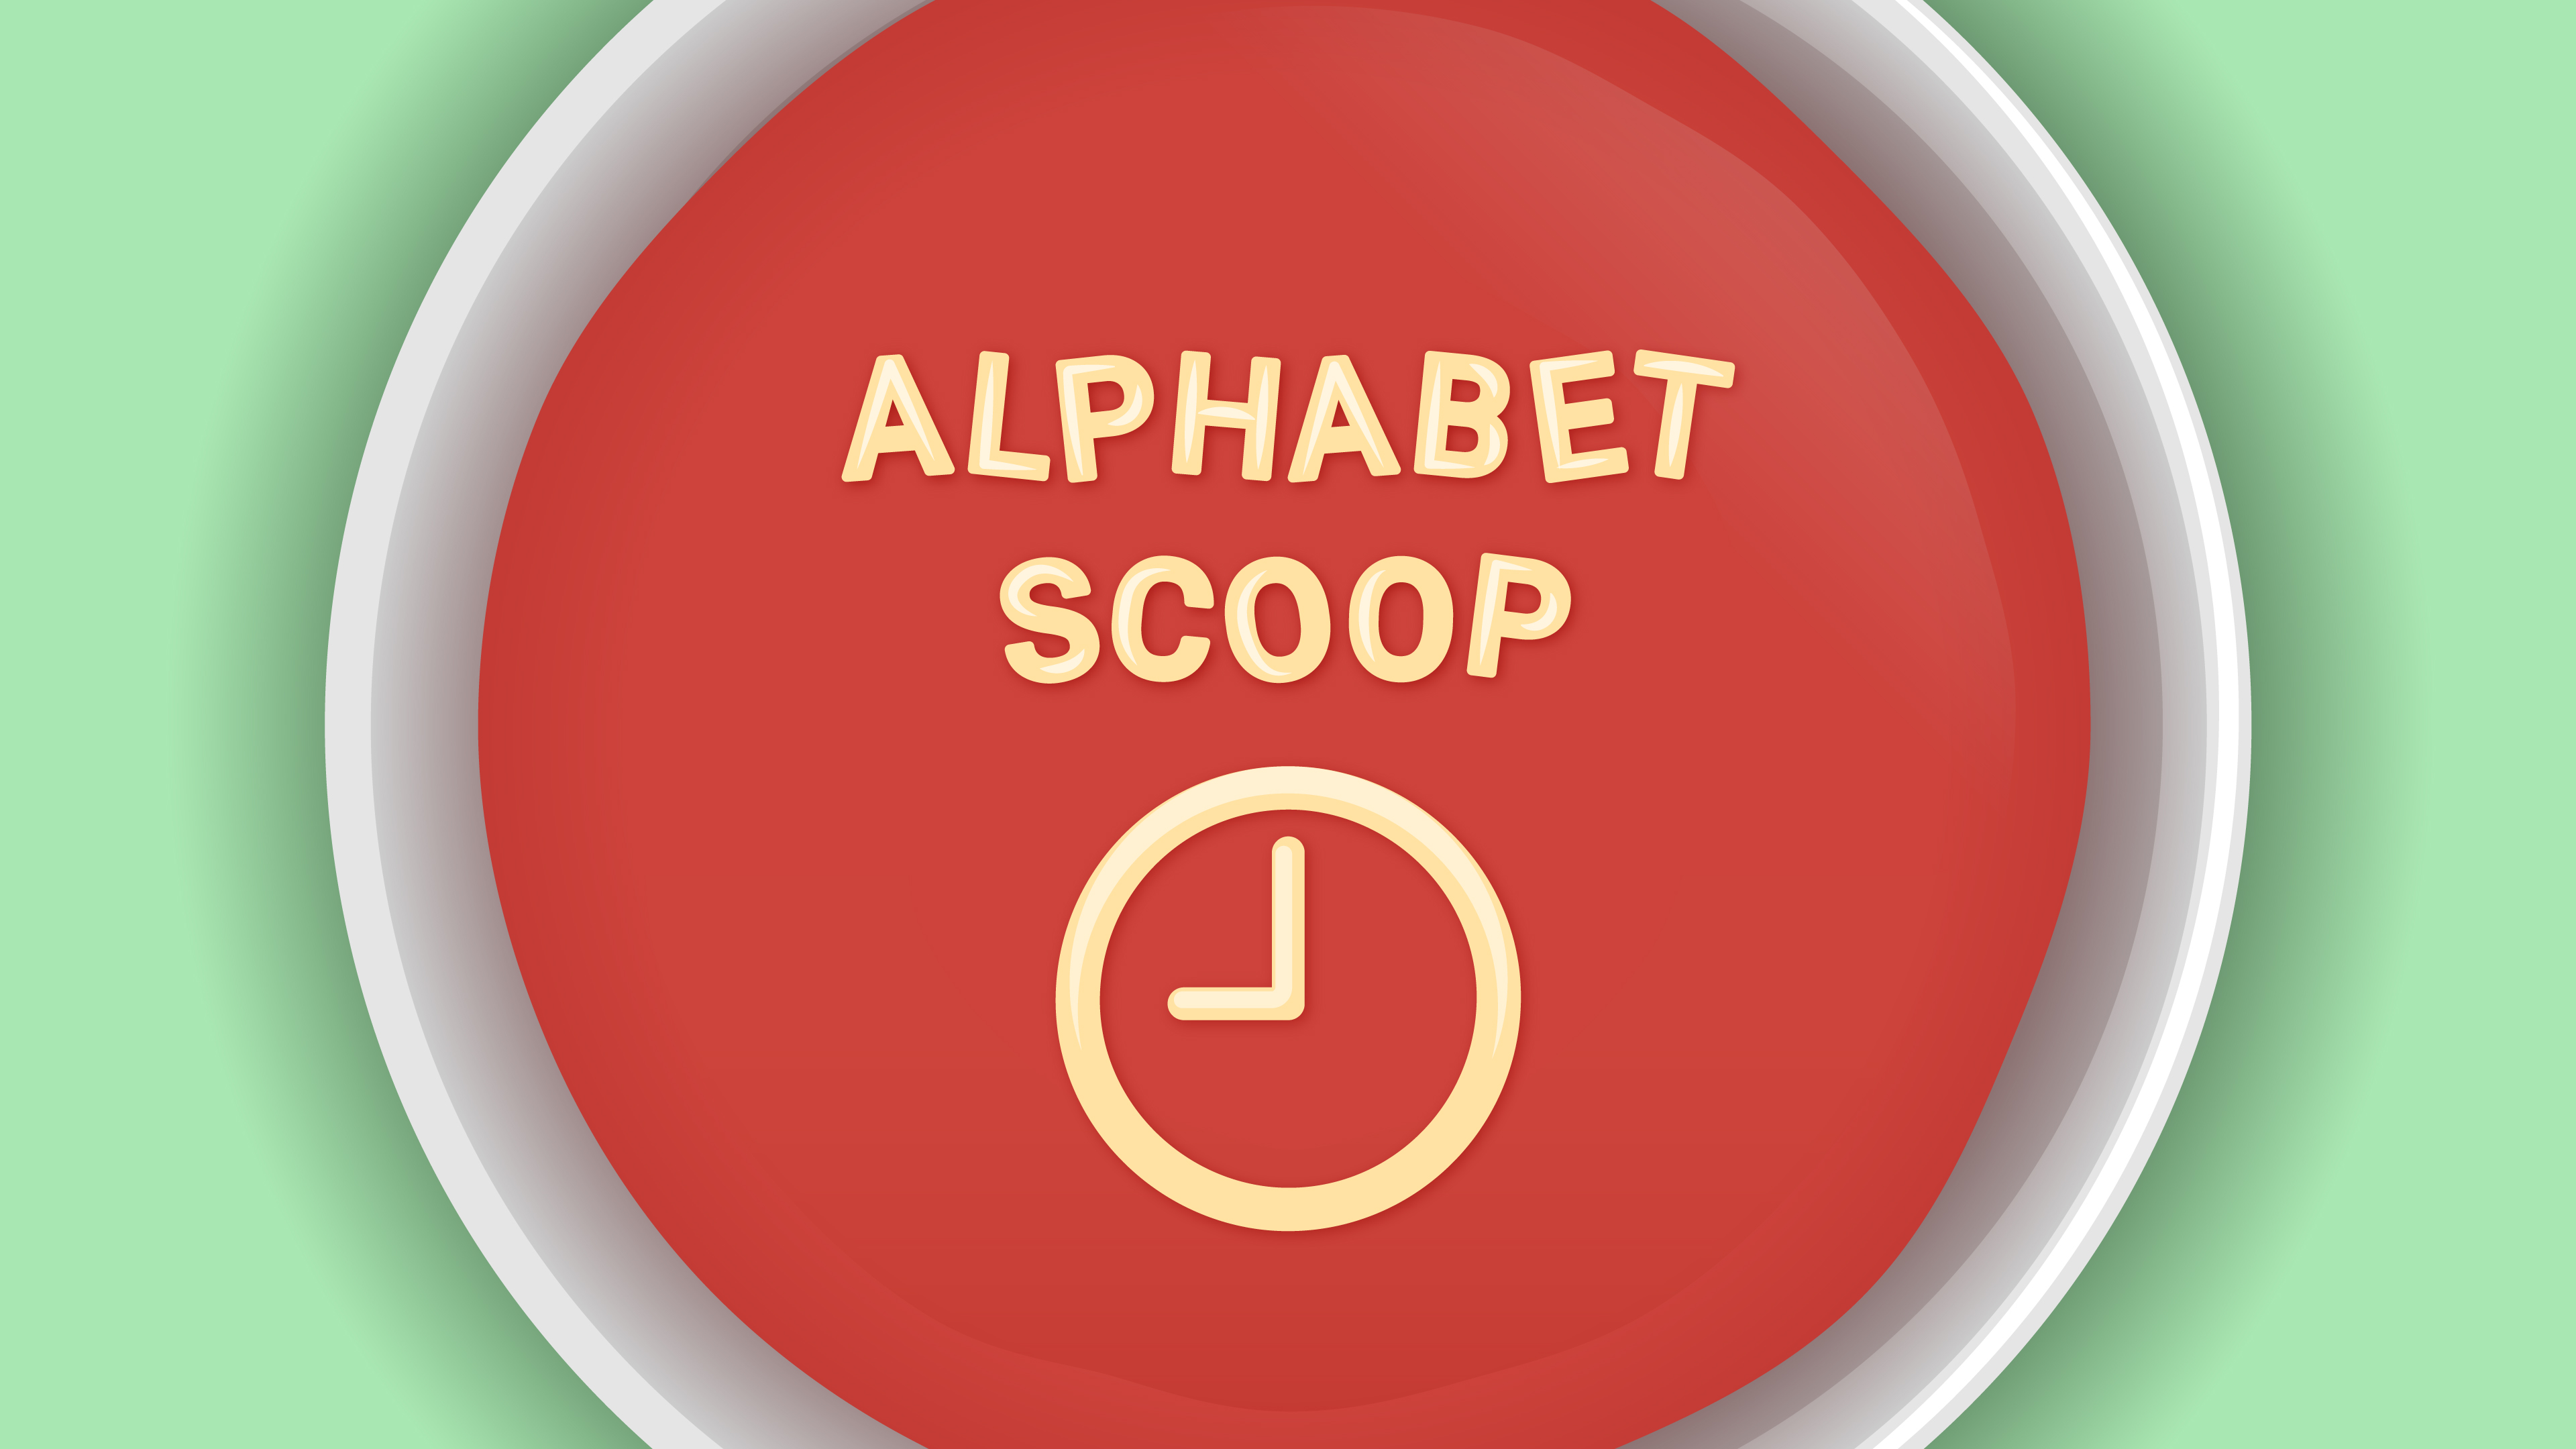 alphabet scoop 020 made by google smart display pixel 2 xl sluggishness material theme